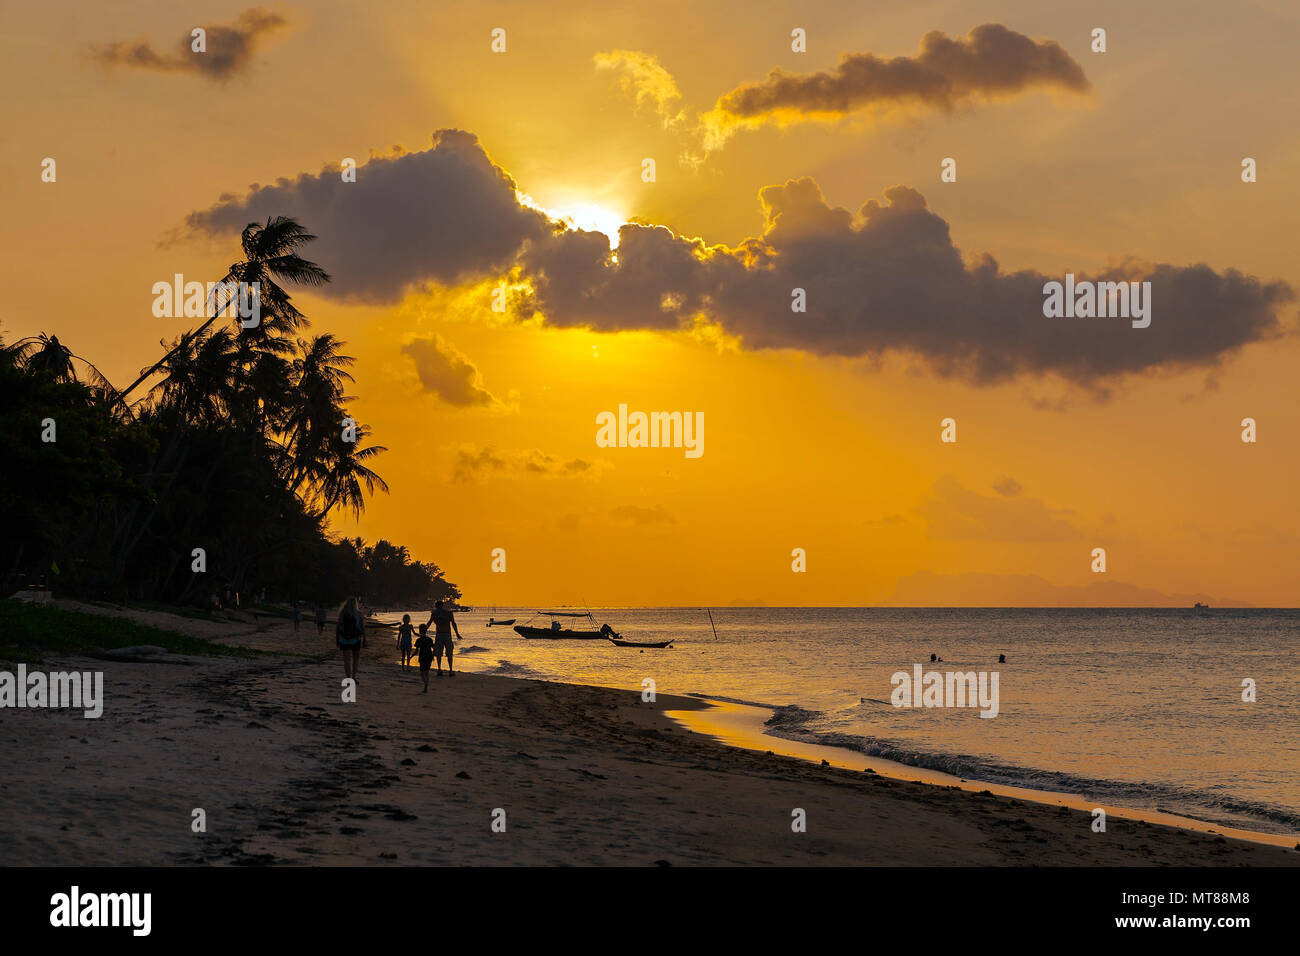 Sunset on the beach of Bang Por on Koh Samui in Thailand - Stock Image